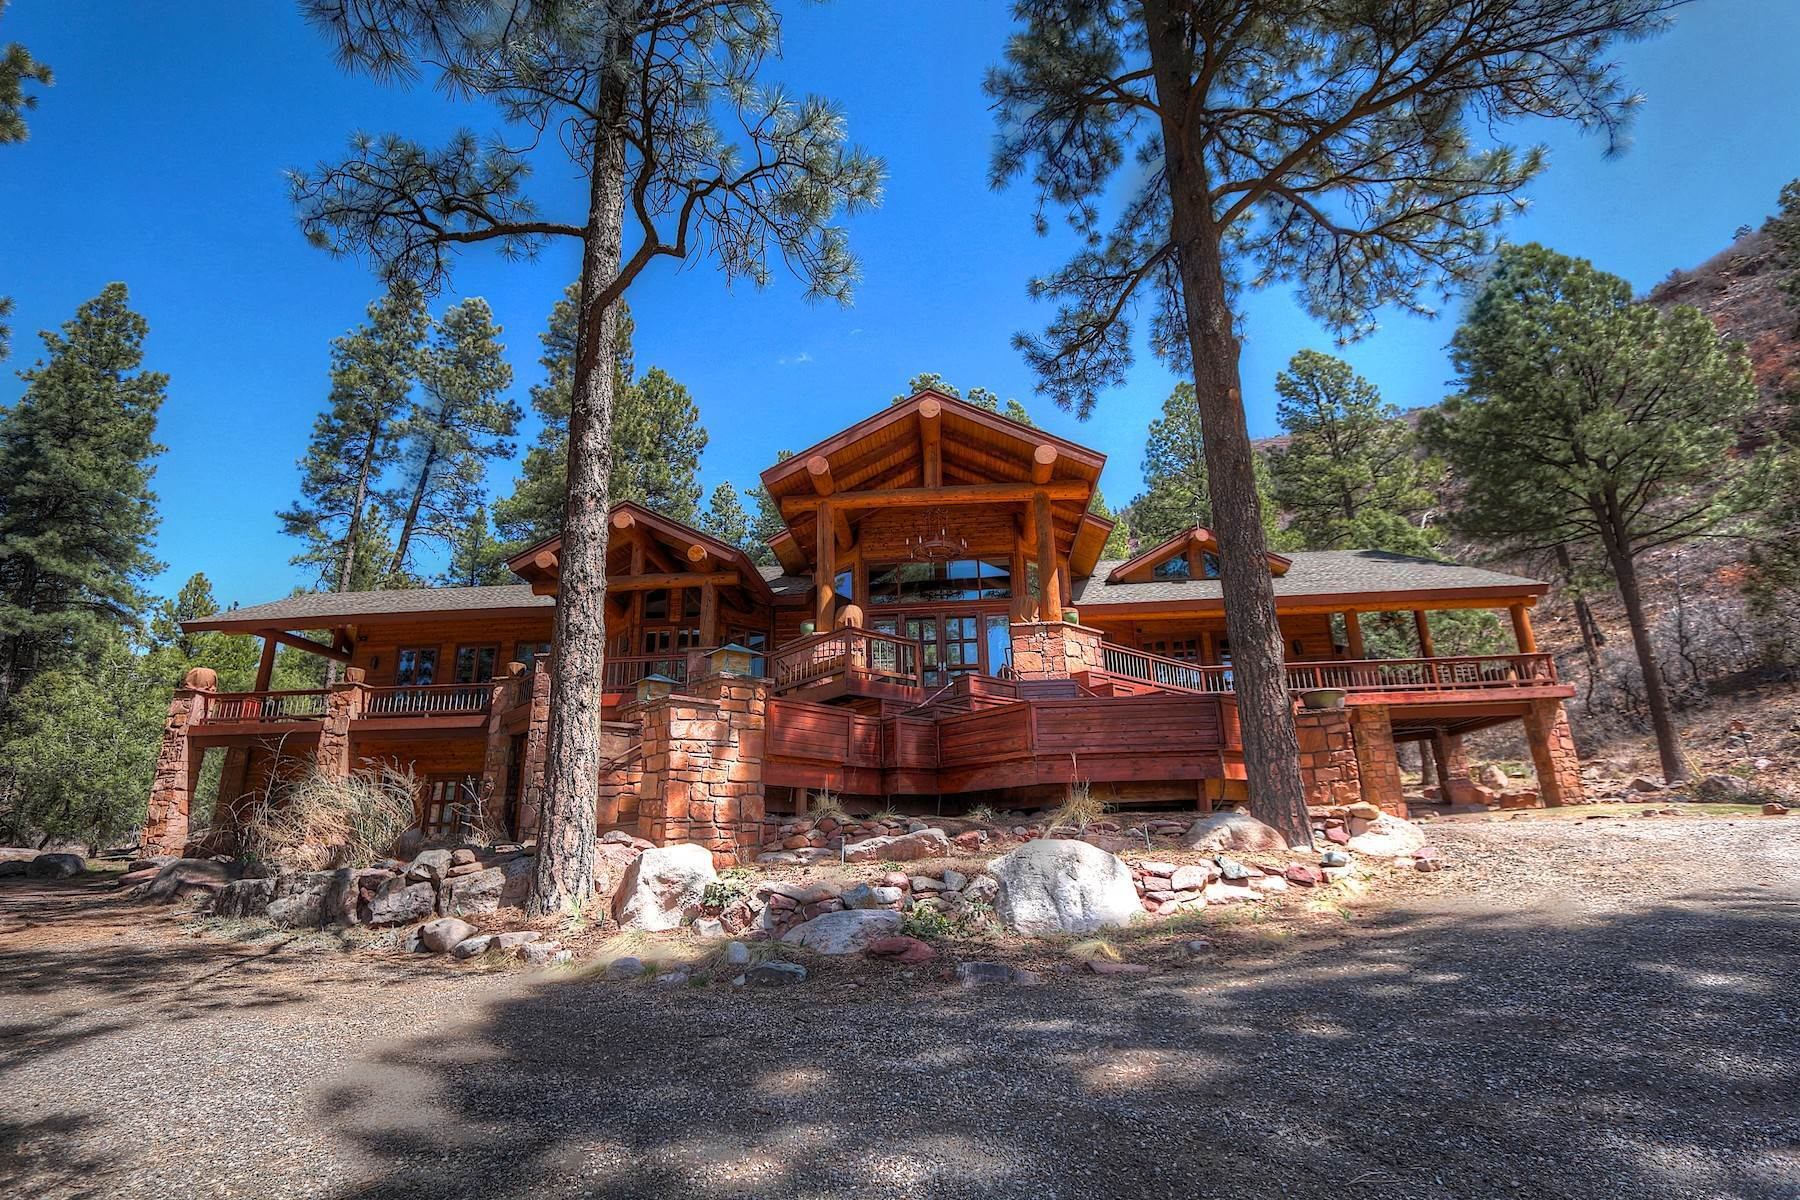 Single Family Homes for Sale at Skywater Ranch 6410 County Road 250 Durango, Colorado 81301 United States